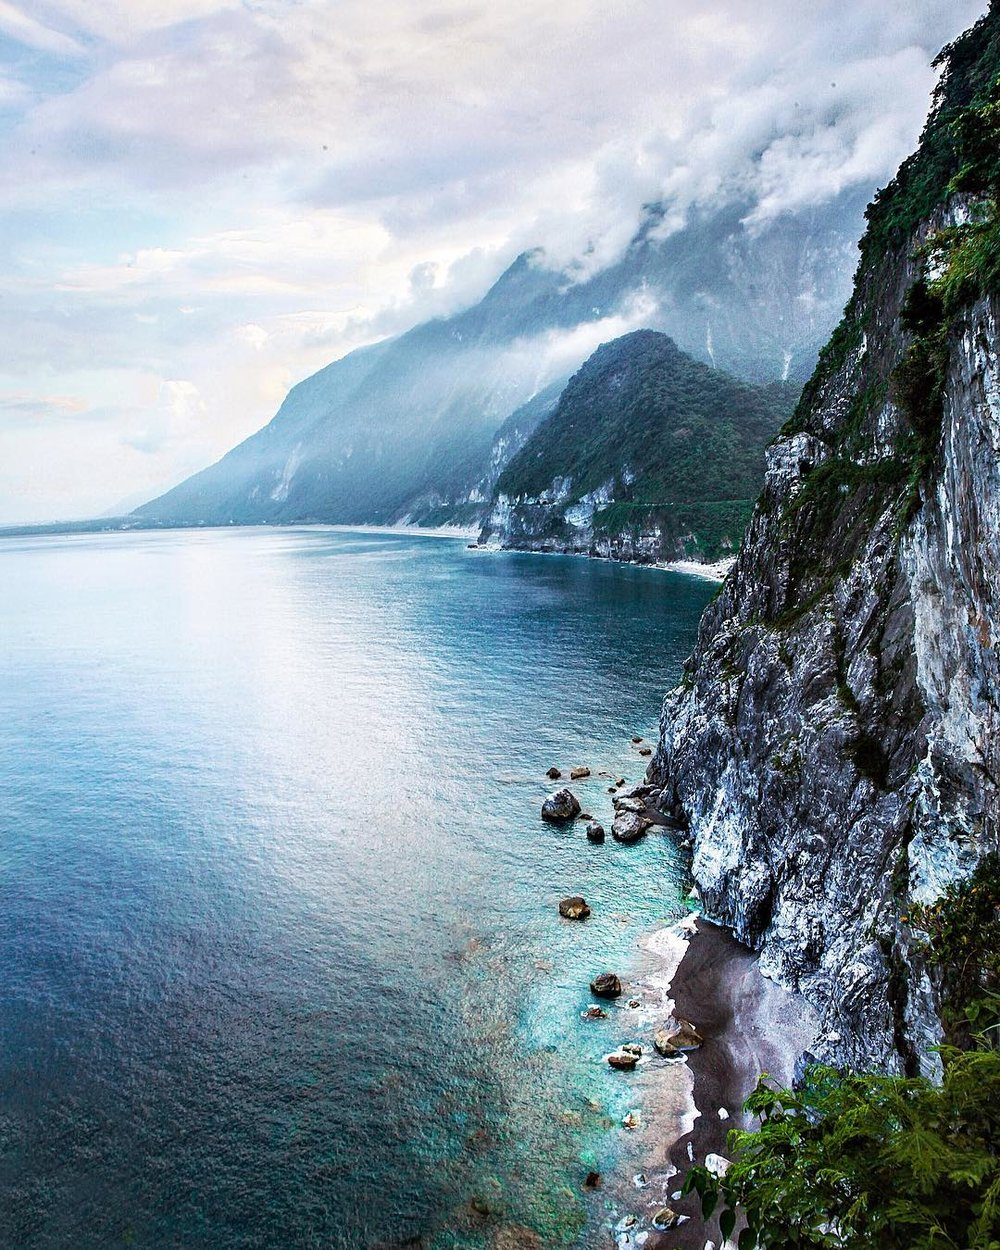 Hualien - One of my favorite coastal cities in Taiwan is Hualien, about 3 hours south of Taipei, on the east coast of the country. Surrounded by the sea on one side and the mountains on the other, every time I come, I manage to discover another ridiculous view like this.